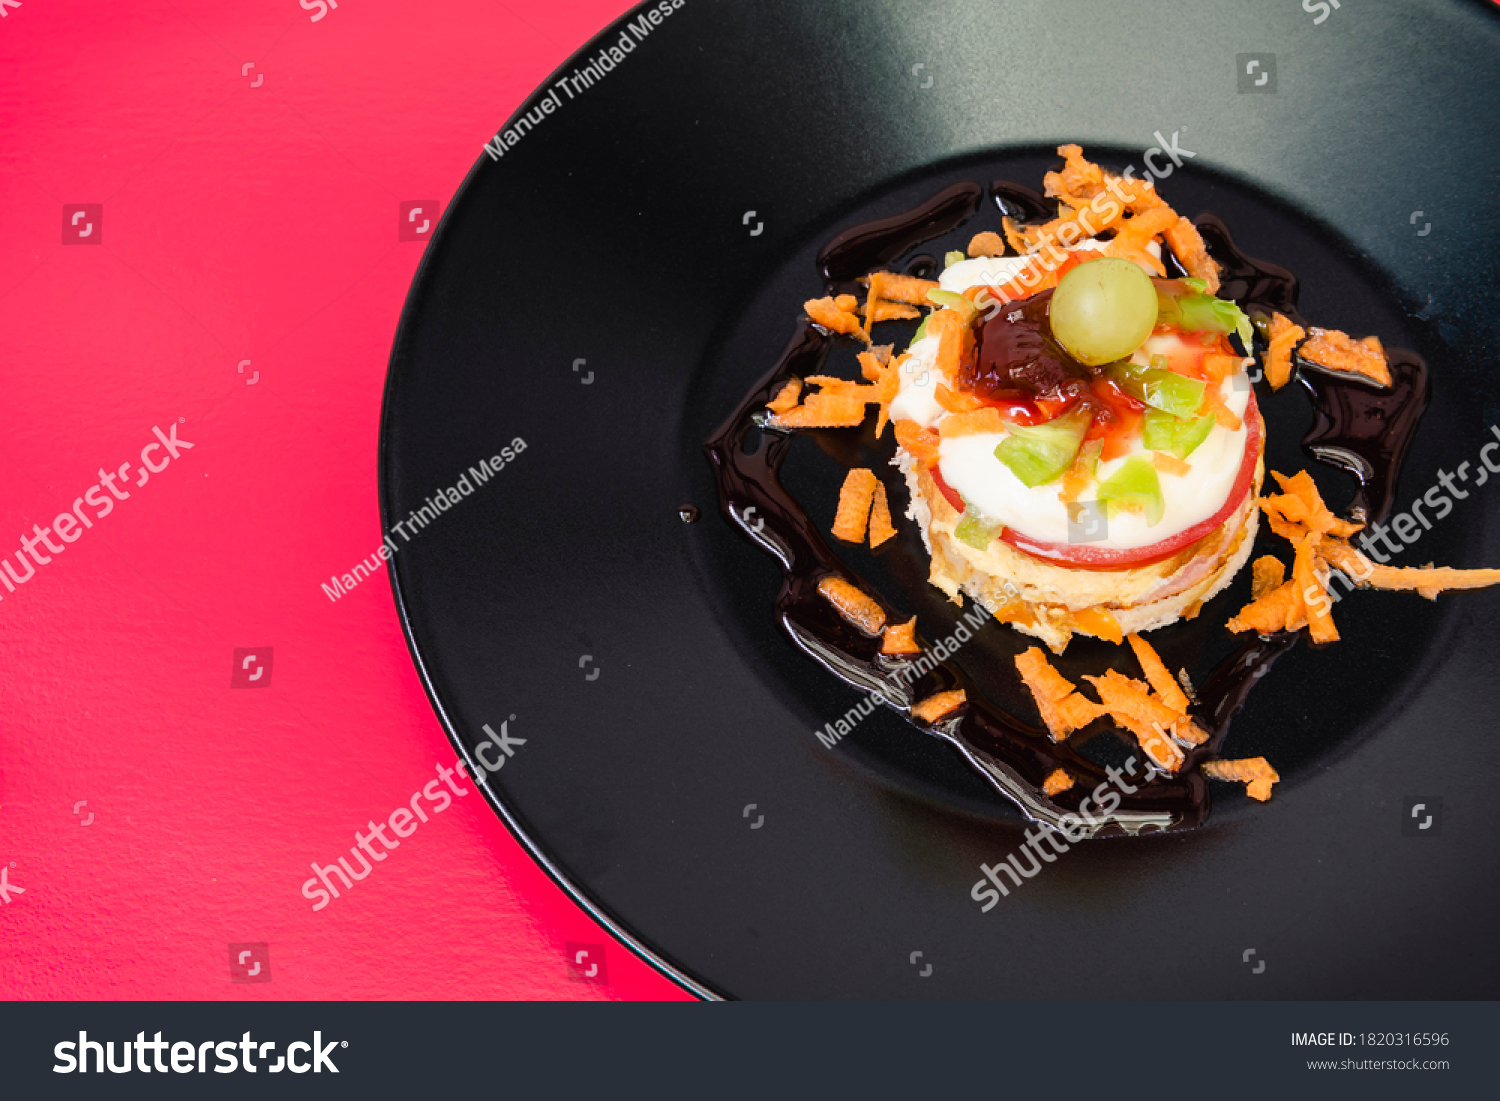 Appetizer based on fresh cheese with fish, fruits and vegetables, decorated on a black plate and red tablecloth